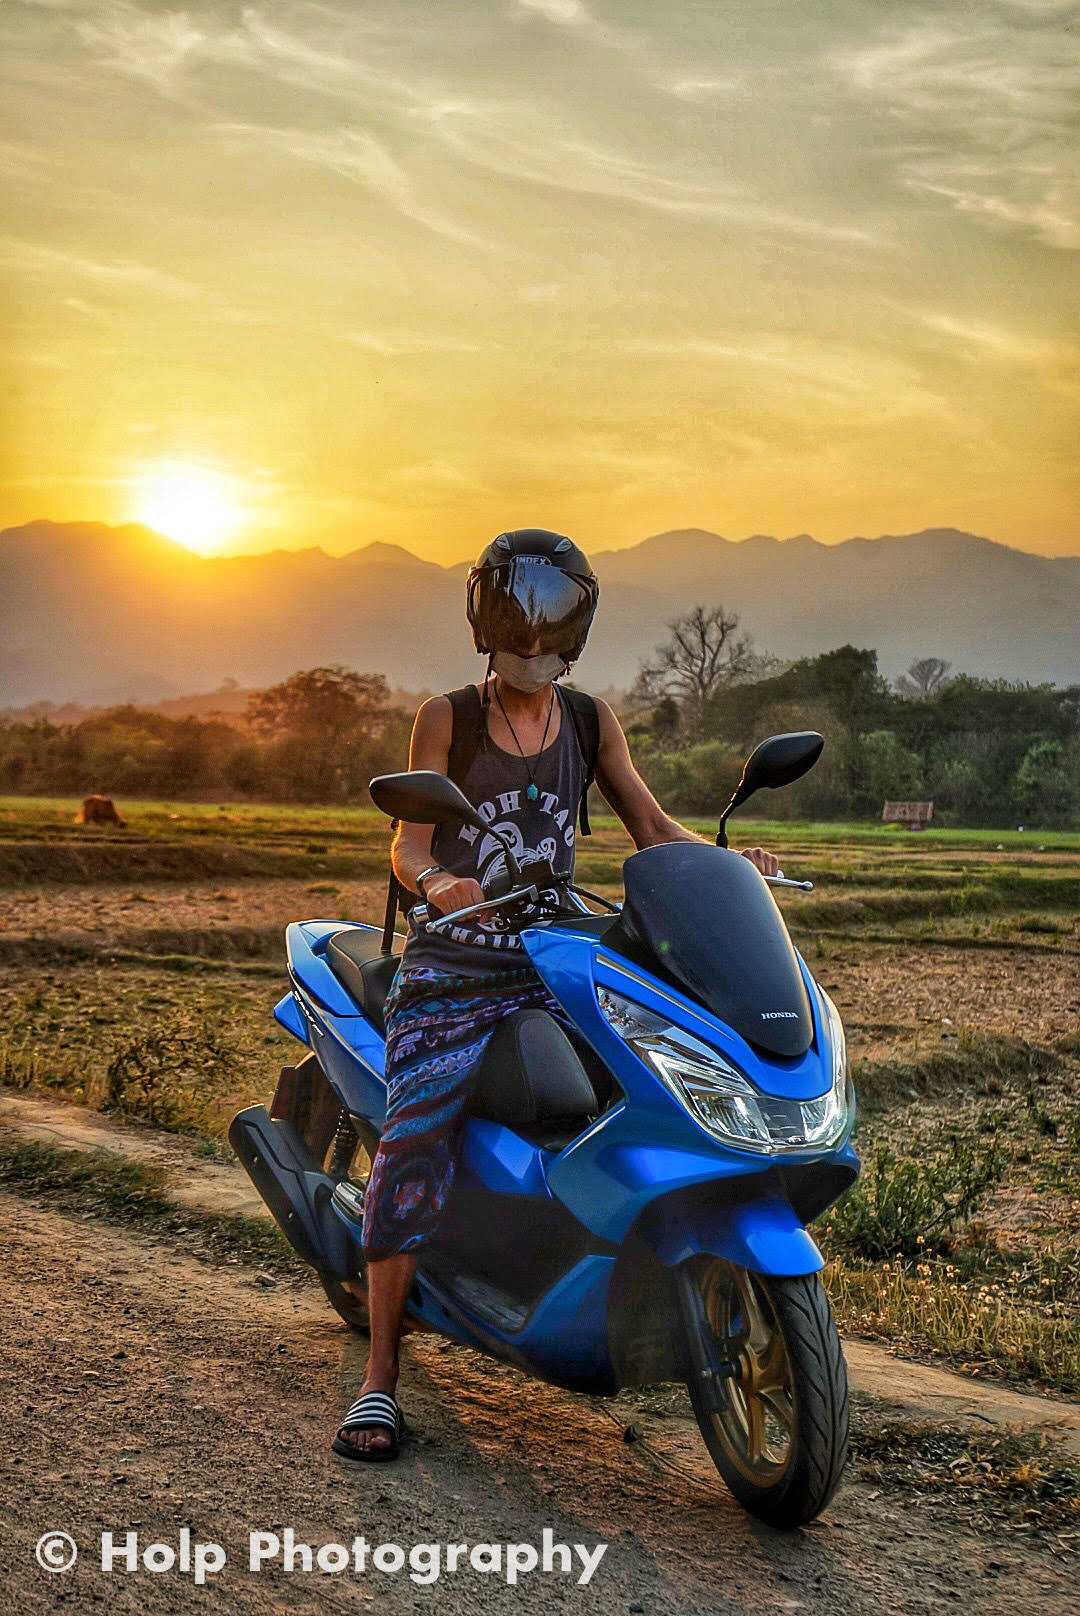 Photo of me and Honda PCX motorbike during sunset in Pai, Thailand.